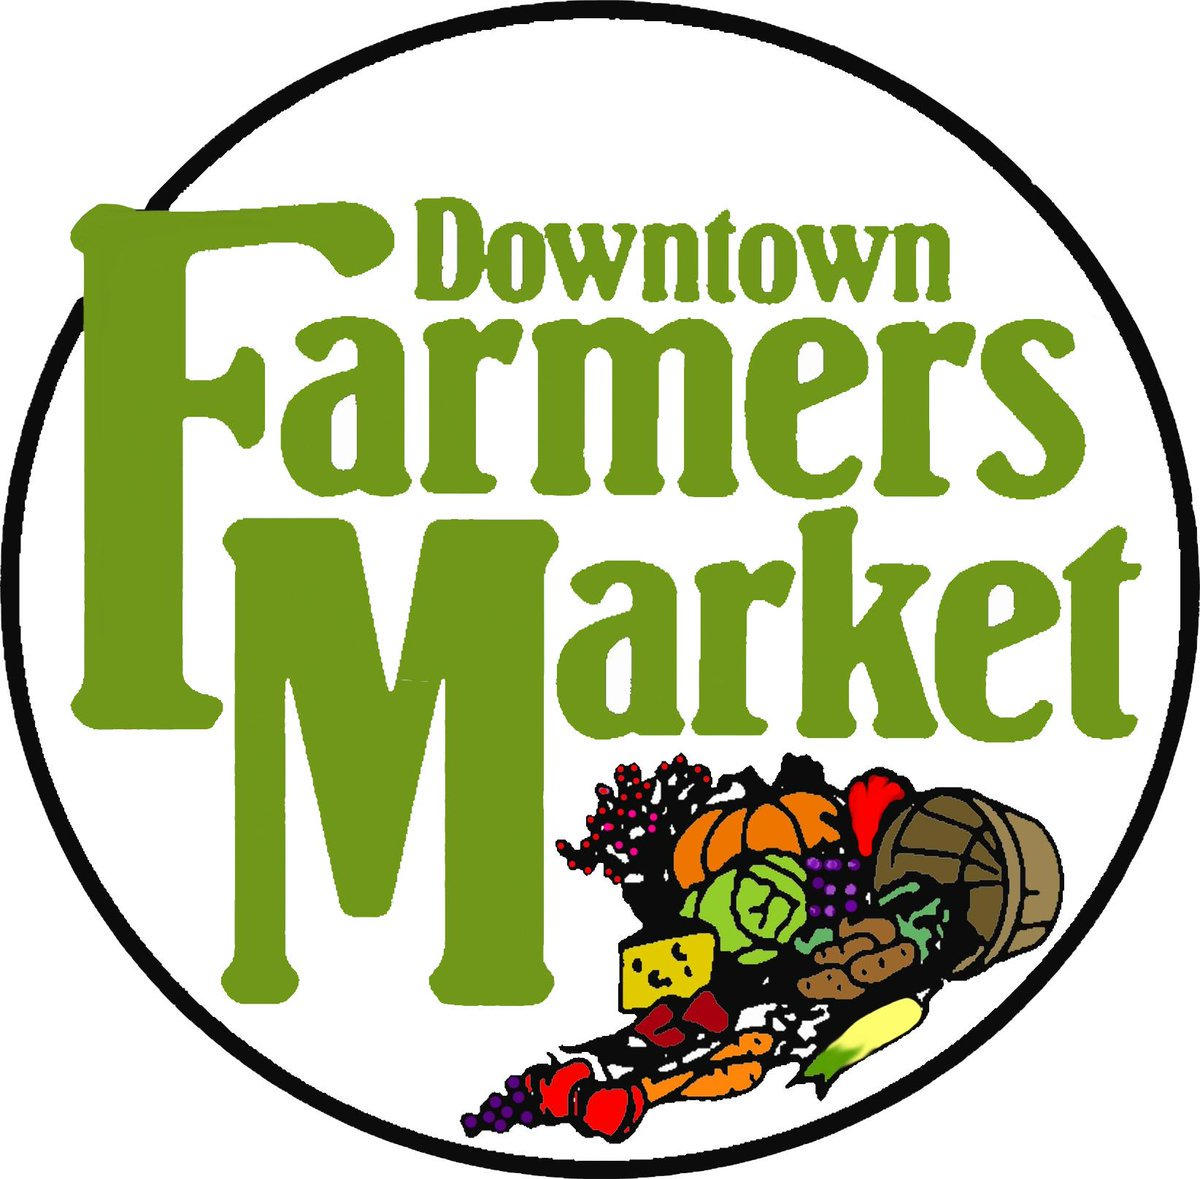 Stop by @downtownSYR's table at the Downtown Farmers Market to pick up a free recipe every Tuesday! New recipes available each week! #DowntownSyracuse <br>http://pic.twitter.com/Y4Gd9azwqk